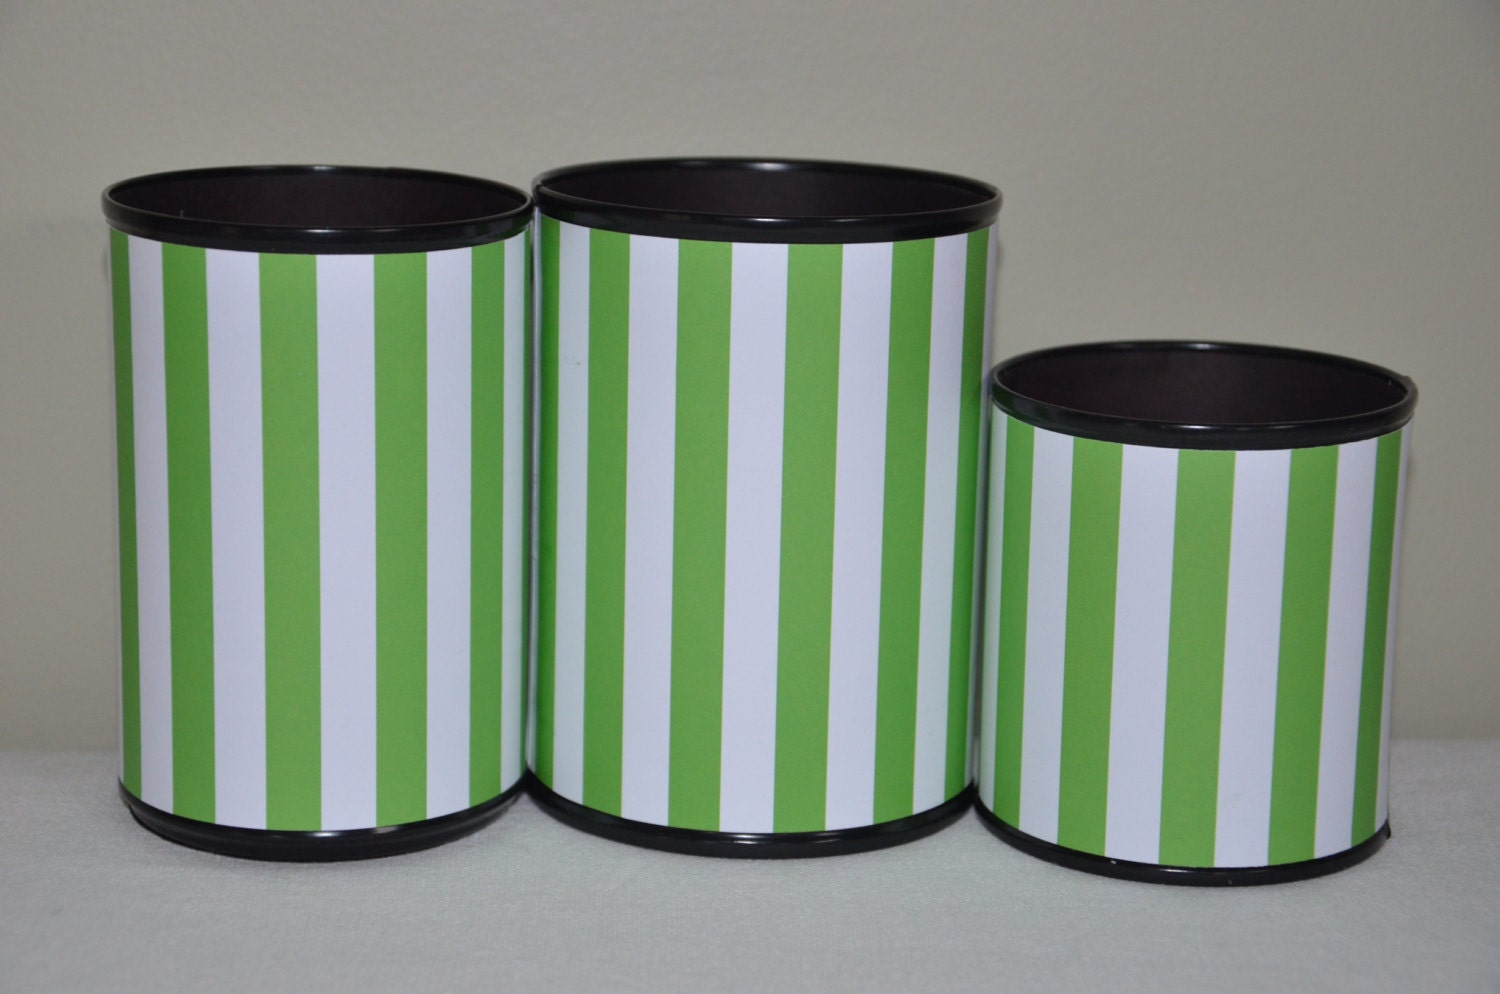 Handmade Pencil Holder Set Green And White Stripes Gifts For